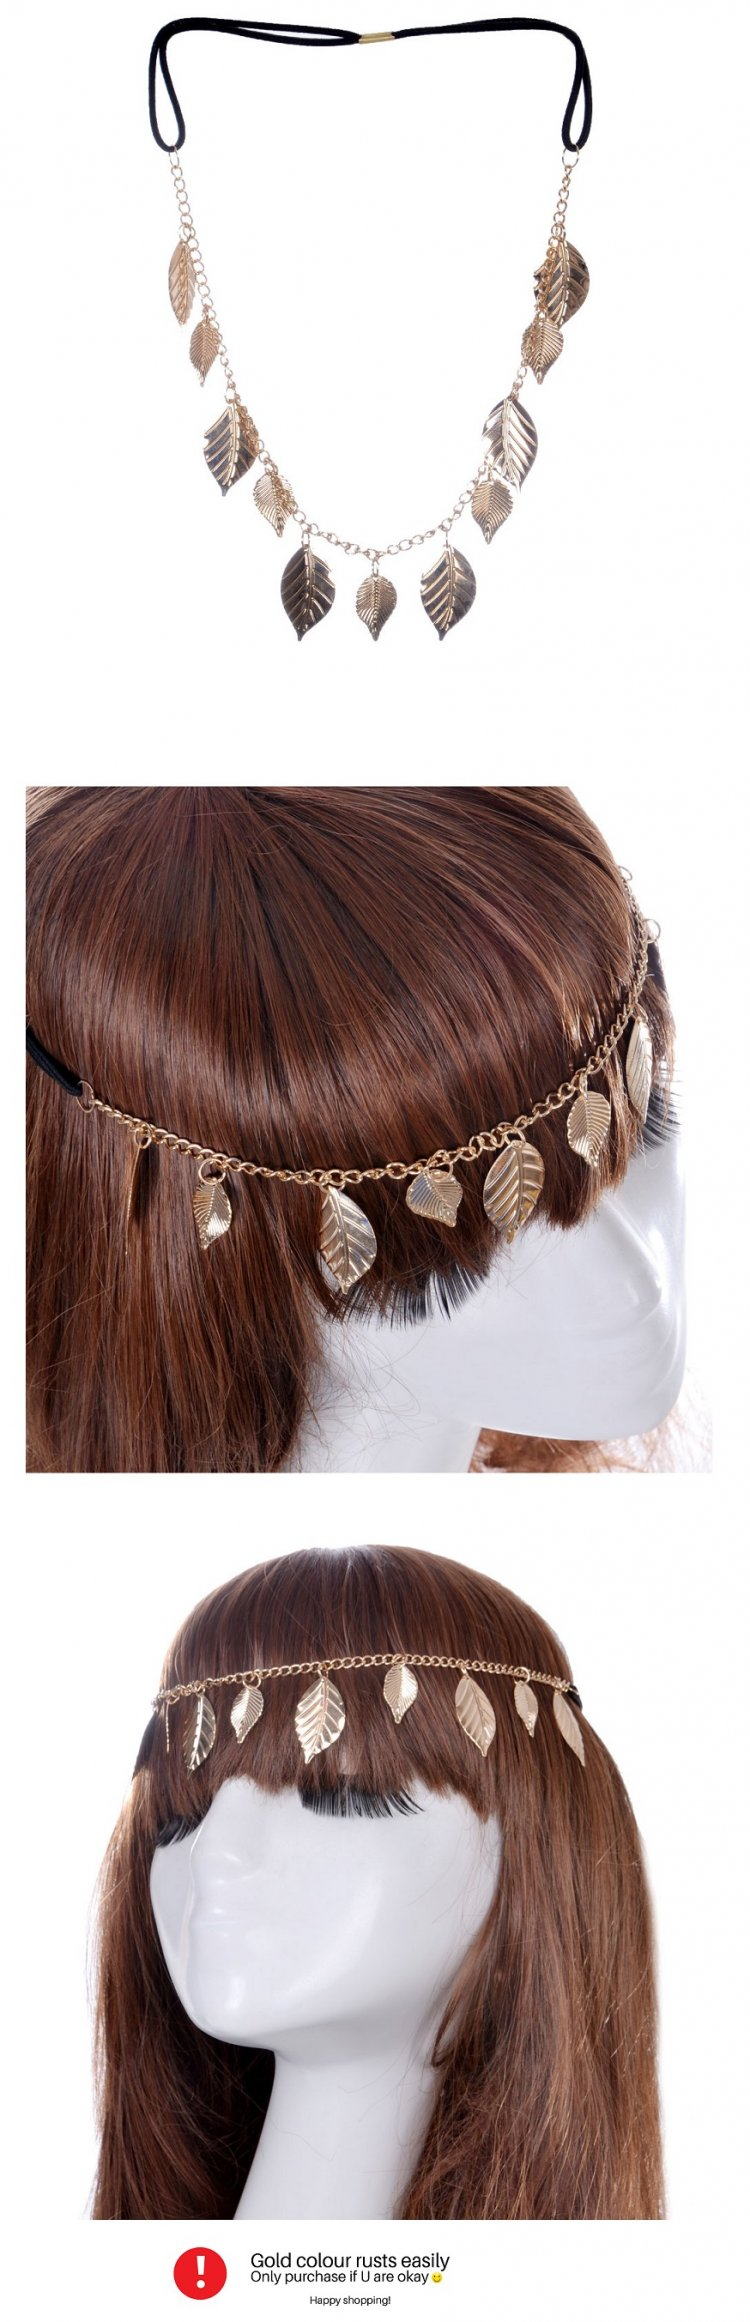 A-GH-FD000151 Gold Leaves Charm Trendy Headchains